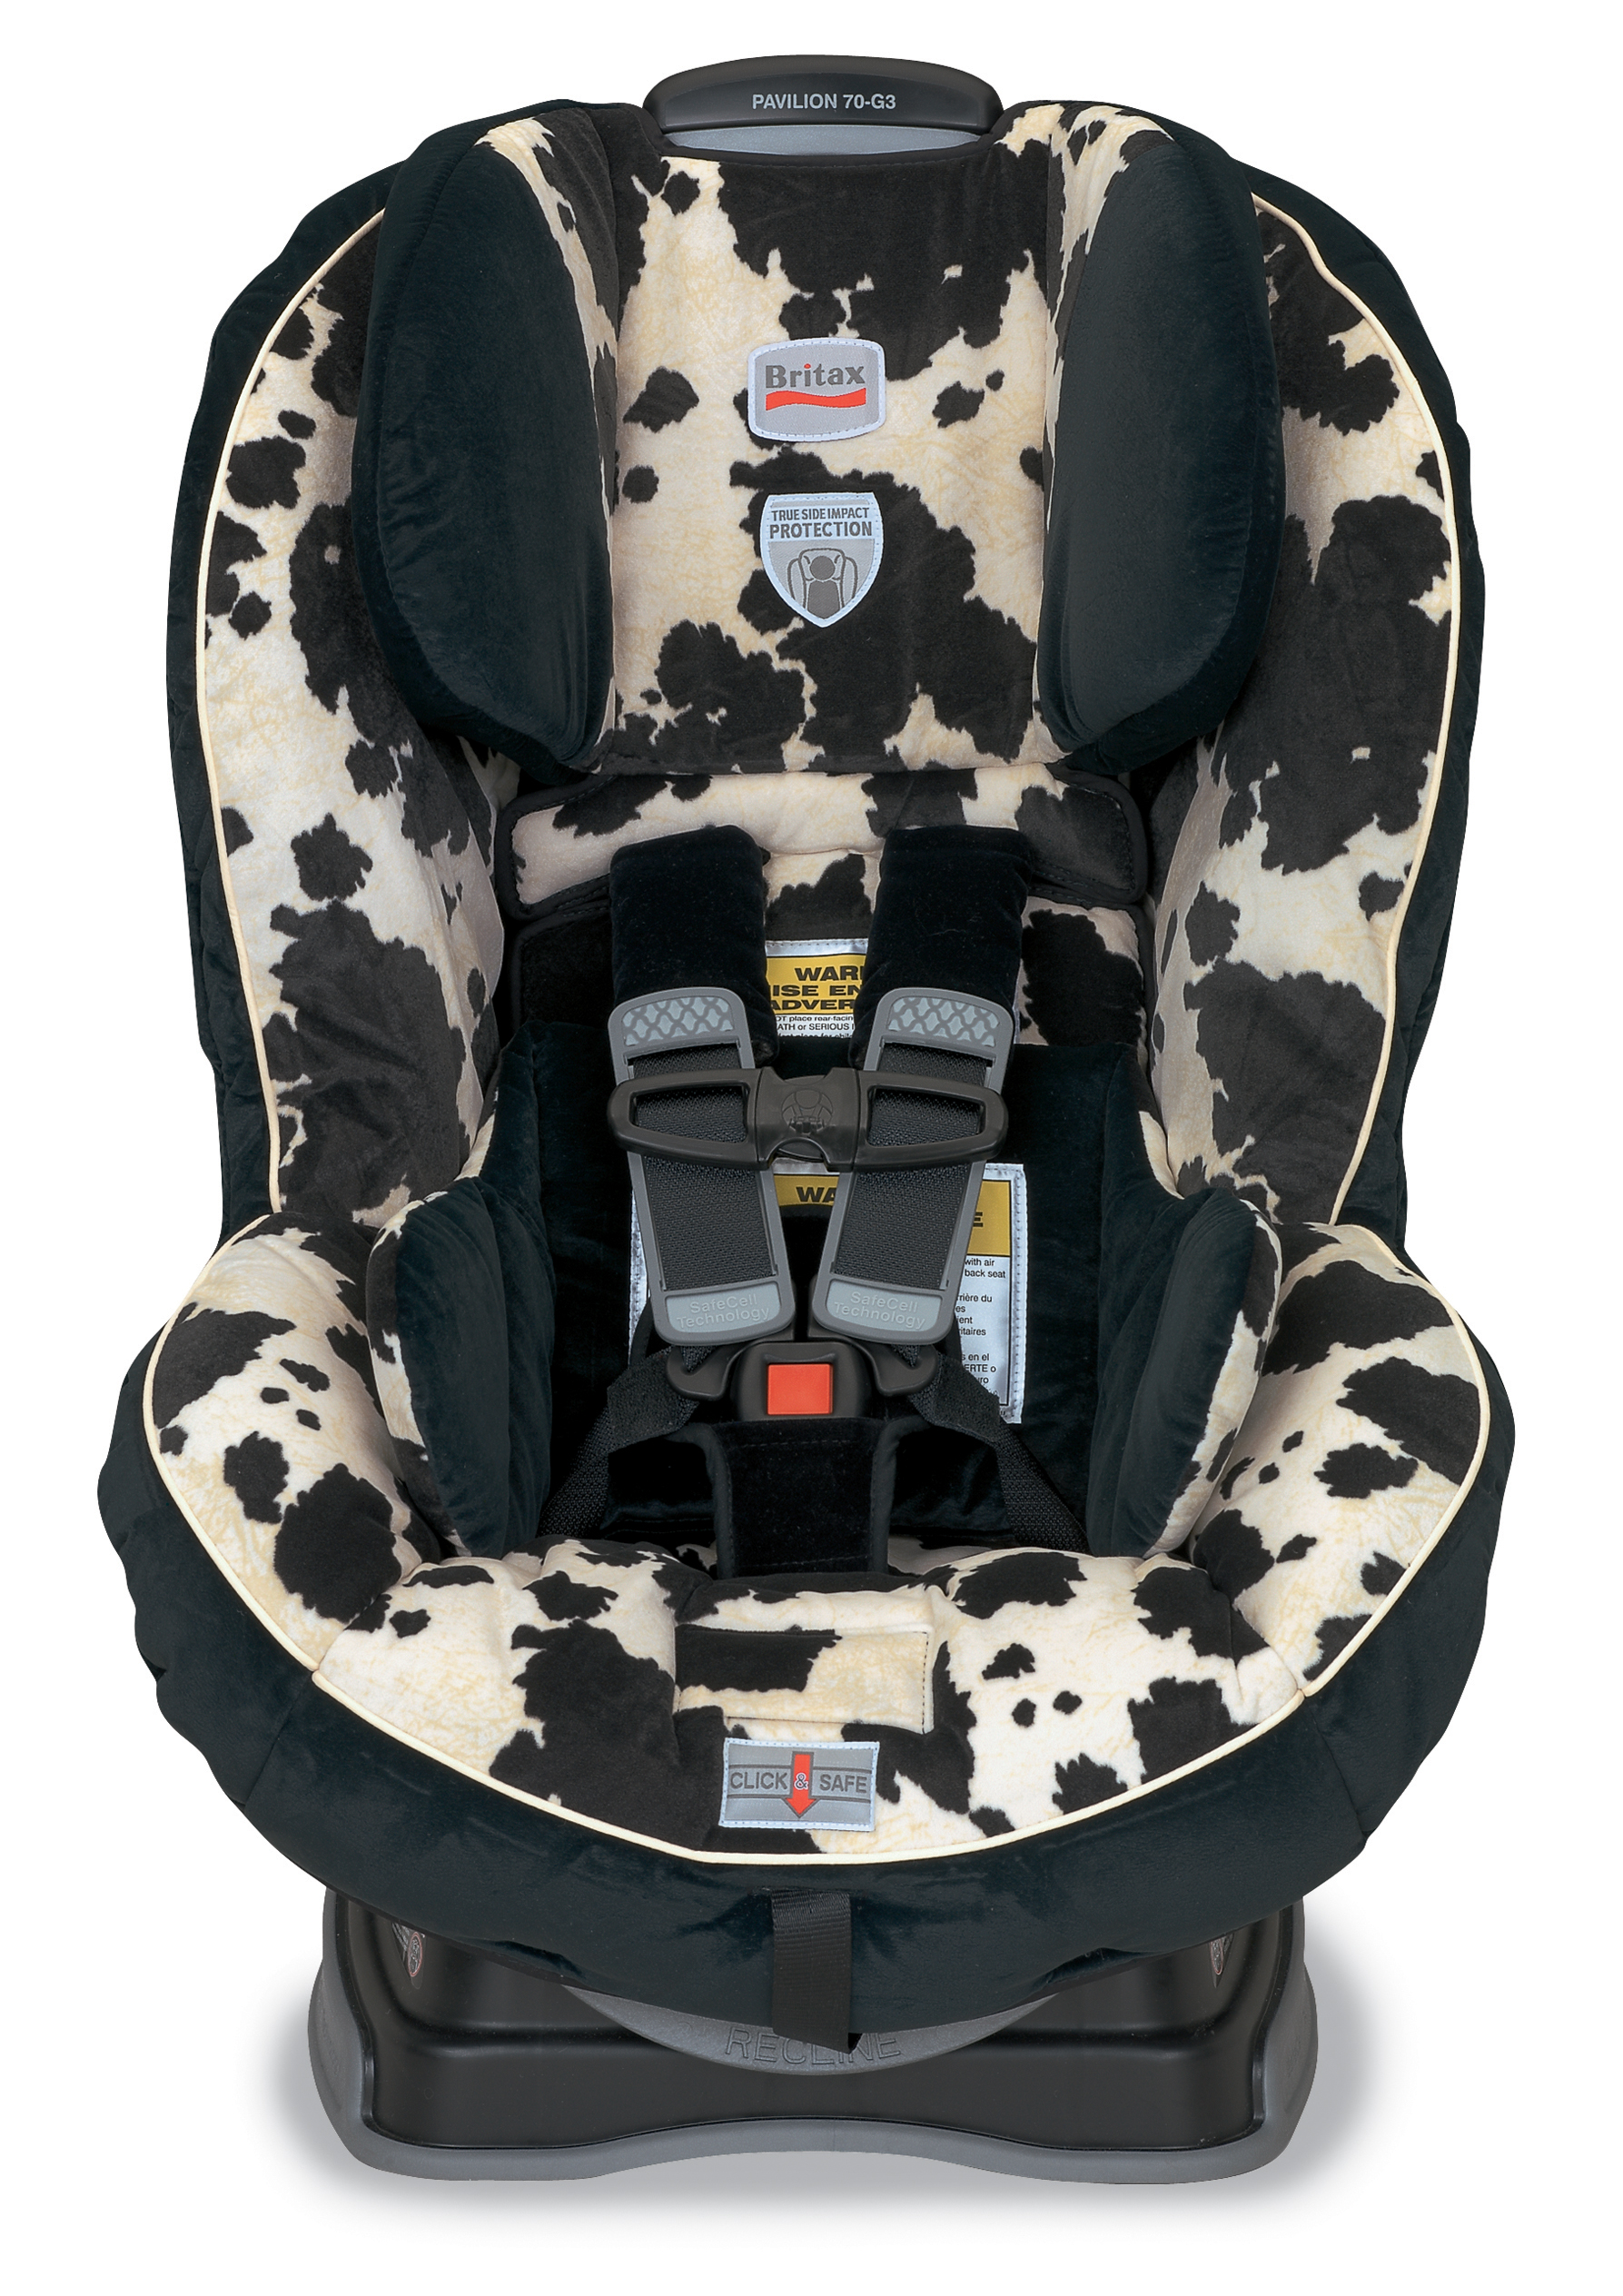 carseatblog the most trusted source for car seat reviews ratings rh carseatblog com Britax Boulevard User Guide Boulevard Britax E9l5769